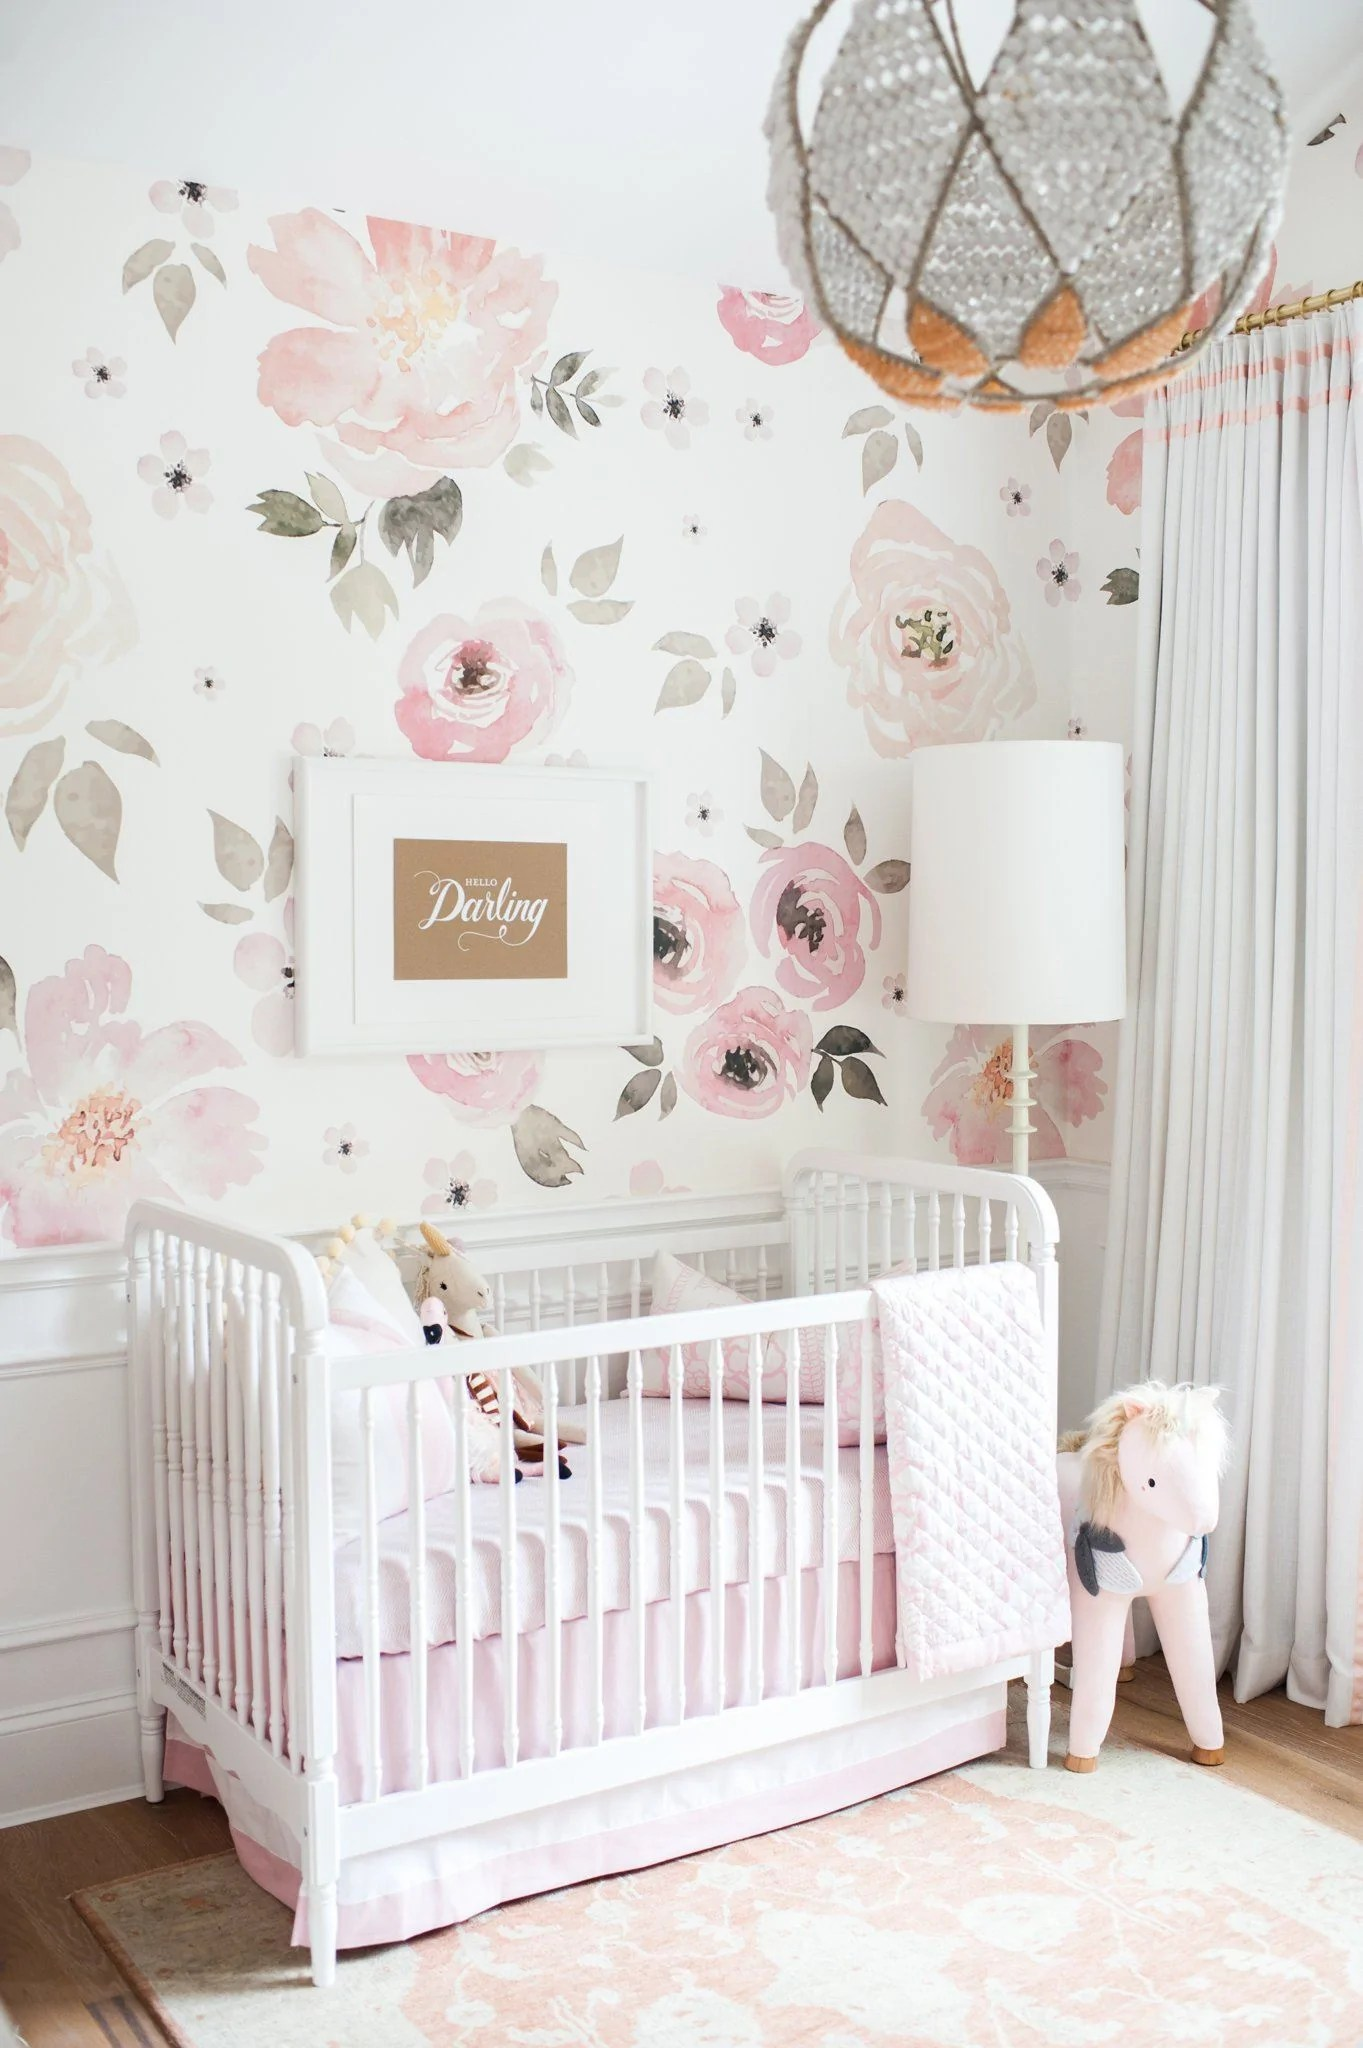 Wandtapete Kinderzimmer Jolie Wallpaper – Project Nursery